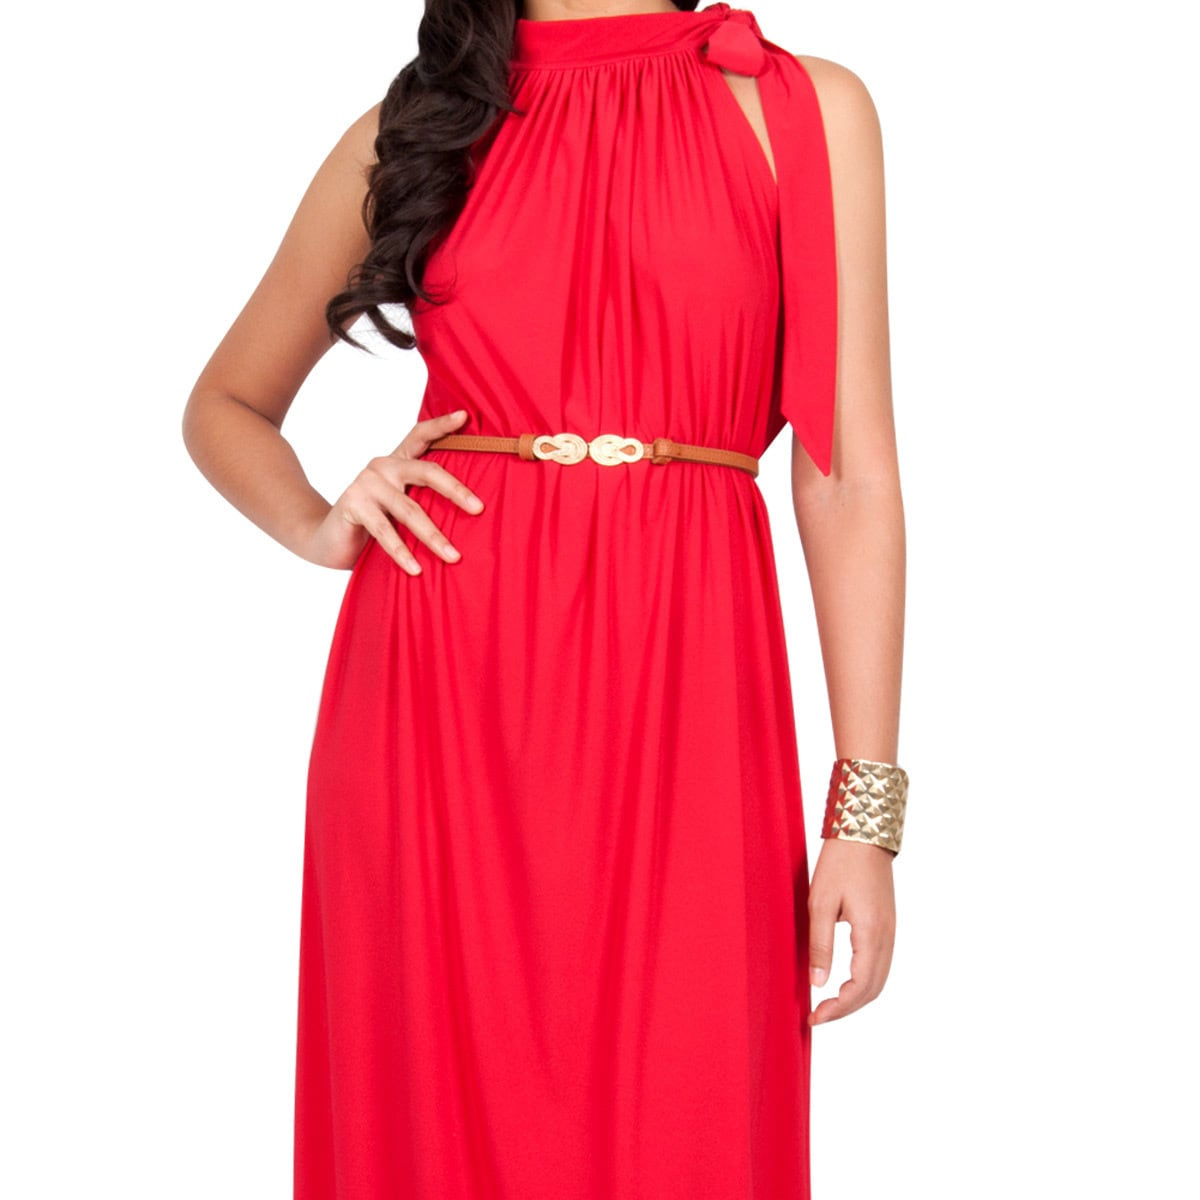 KOH KOH Womens Long Prom Formal Evening Bridesmaid Belted Summer ...